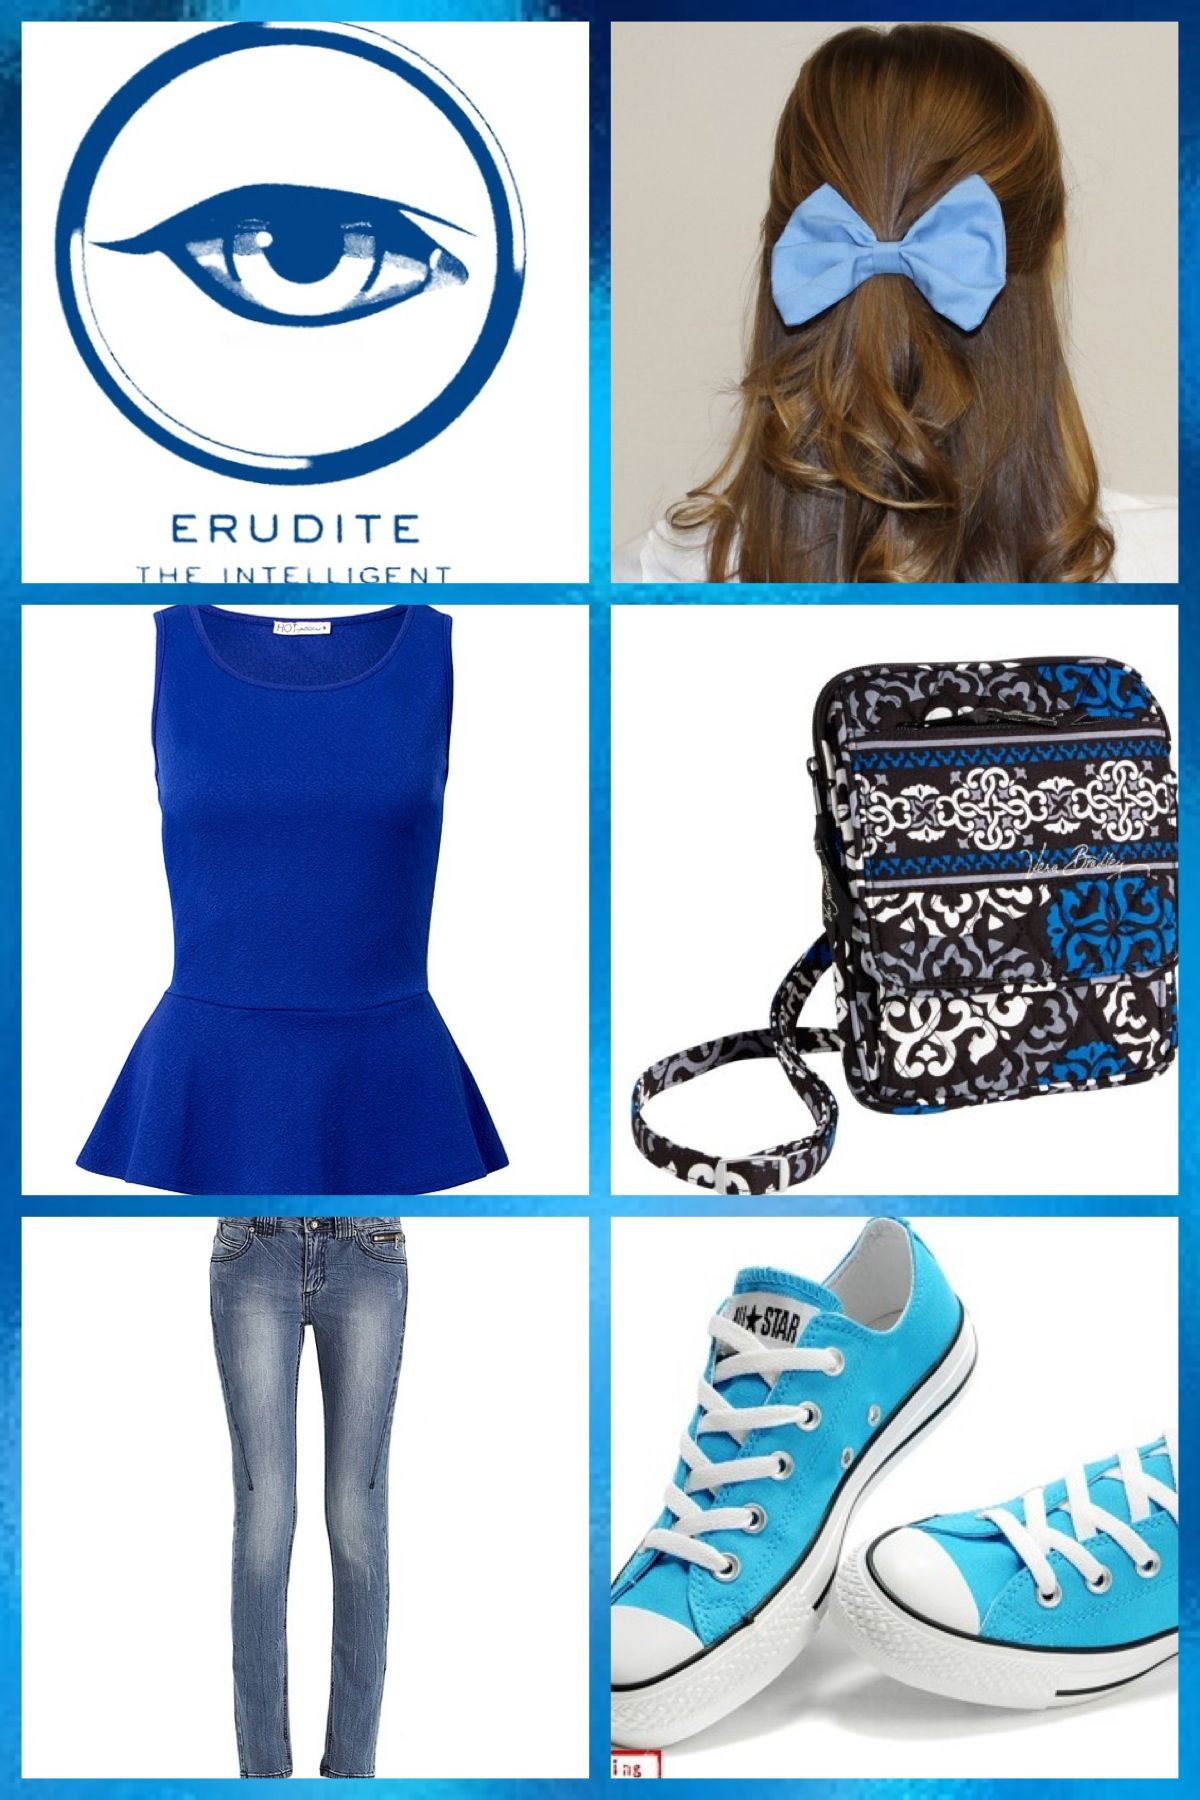 Erudite Outfit  sc 1 st  Pinterest & Erudite Outfit | Erudite clothes | Pinterest | Erudite and Divergent